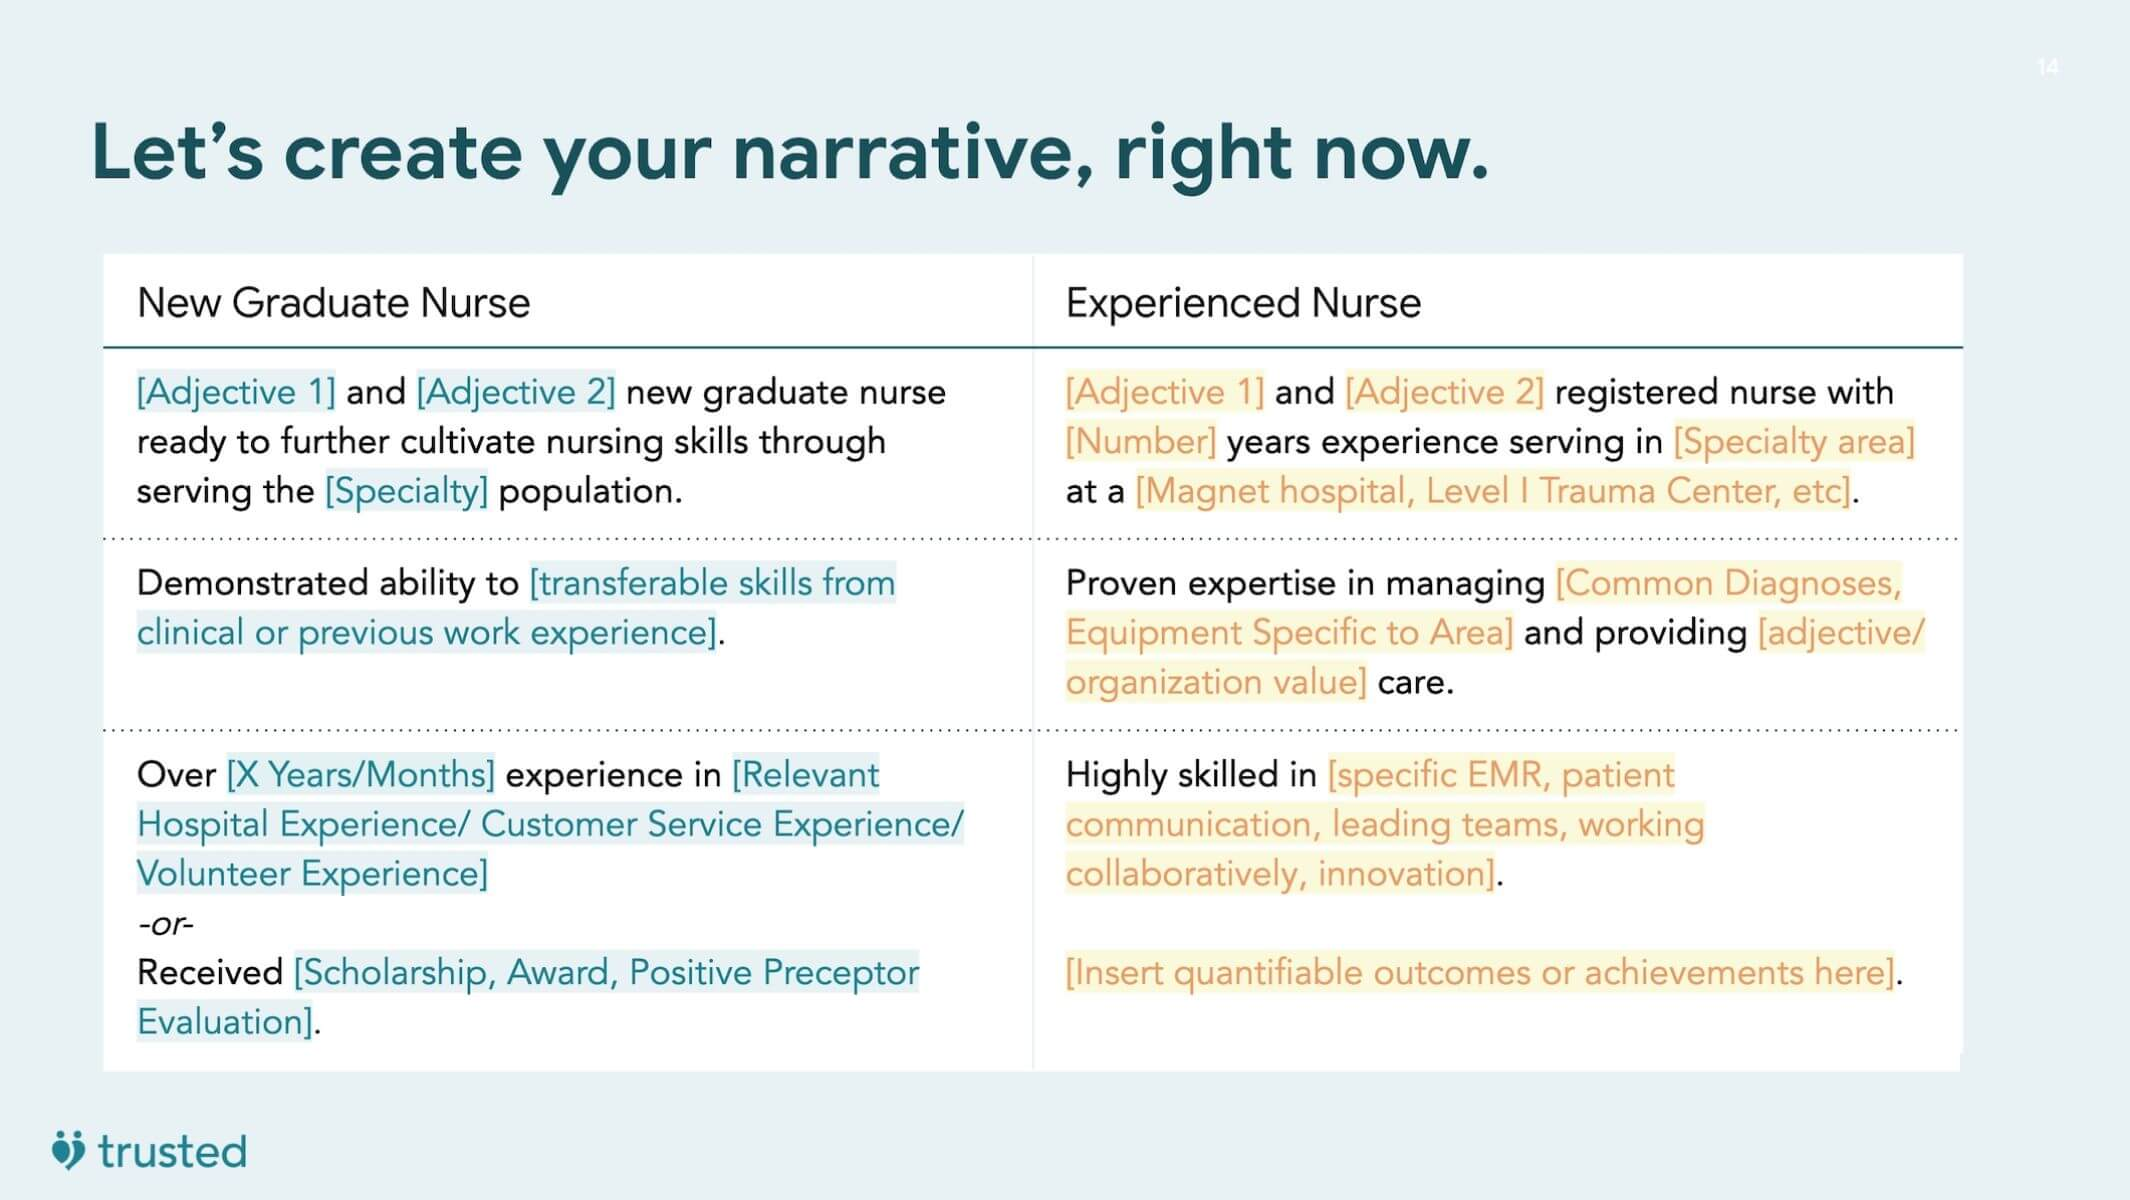 two-sided example slide of nurse narratives showing new graduate nurse and more experienced nurse example